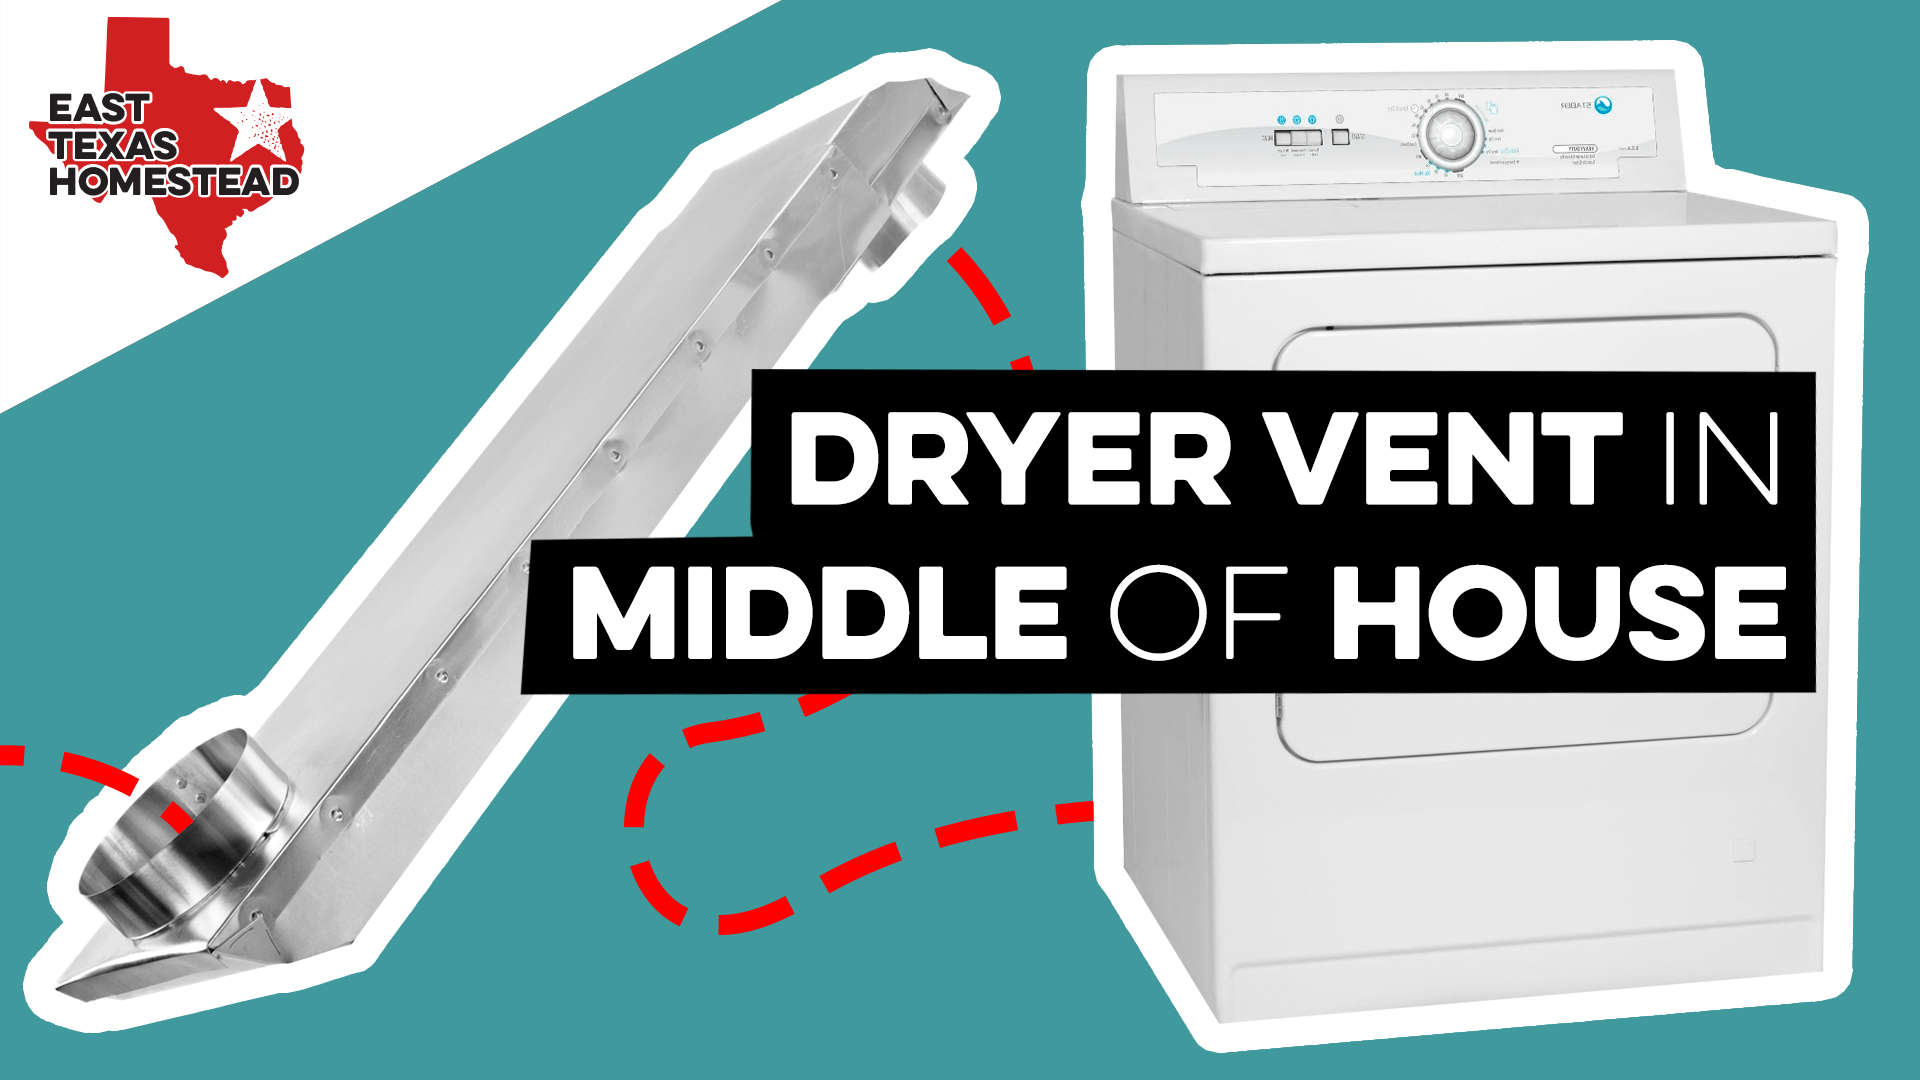 Poster image for Installing Dryer Vent in Middle of House video